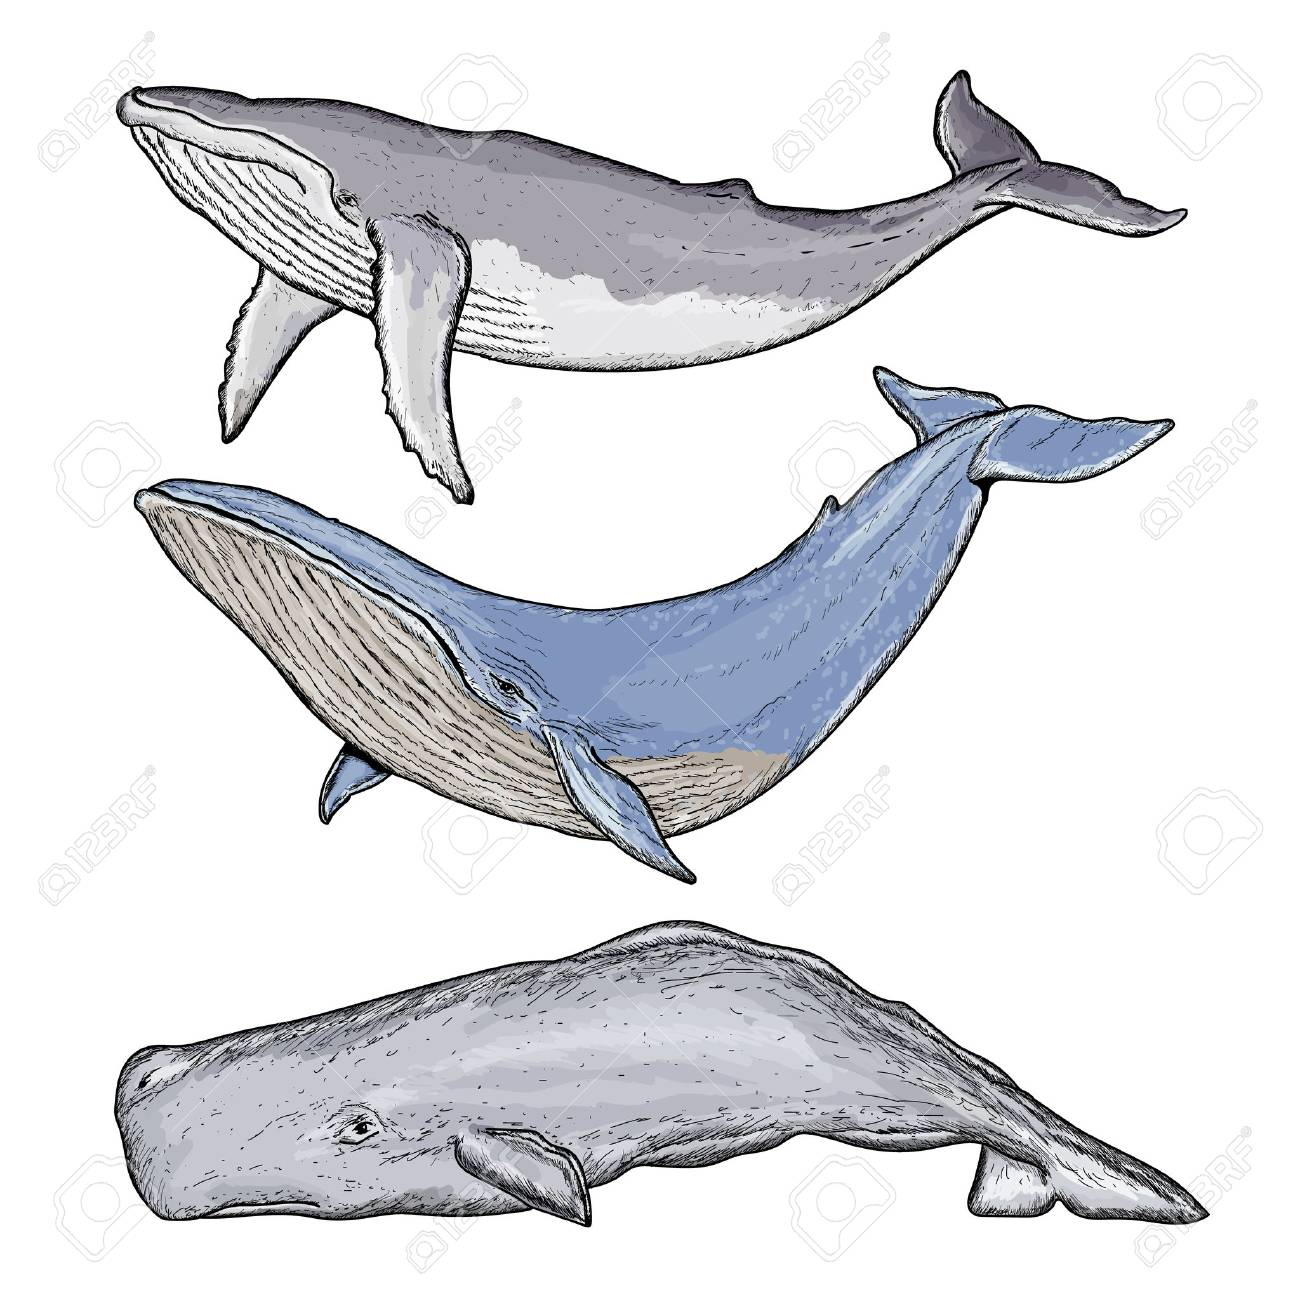 Attractive Whale Anatomy Dork Adornment - Physiology Of Human Body ...